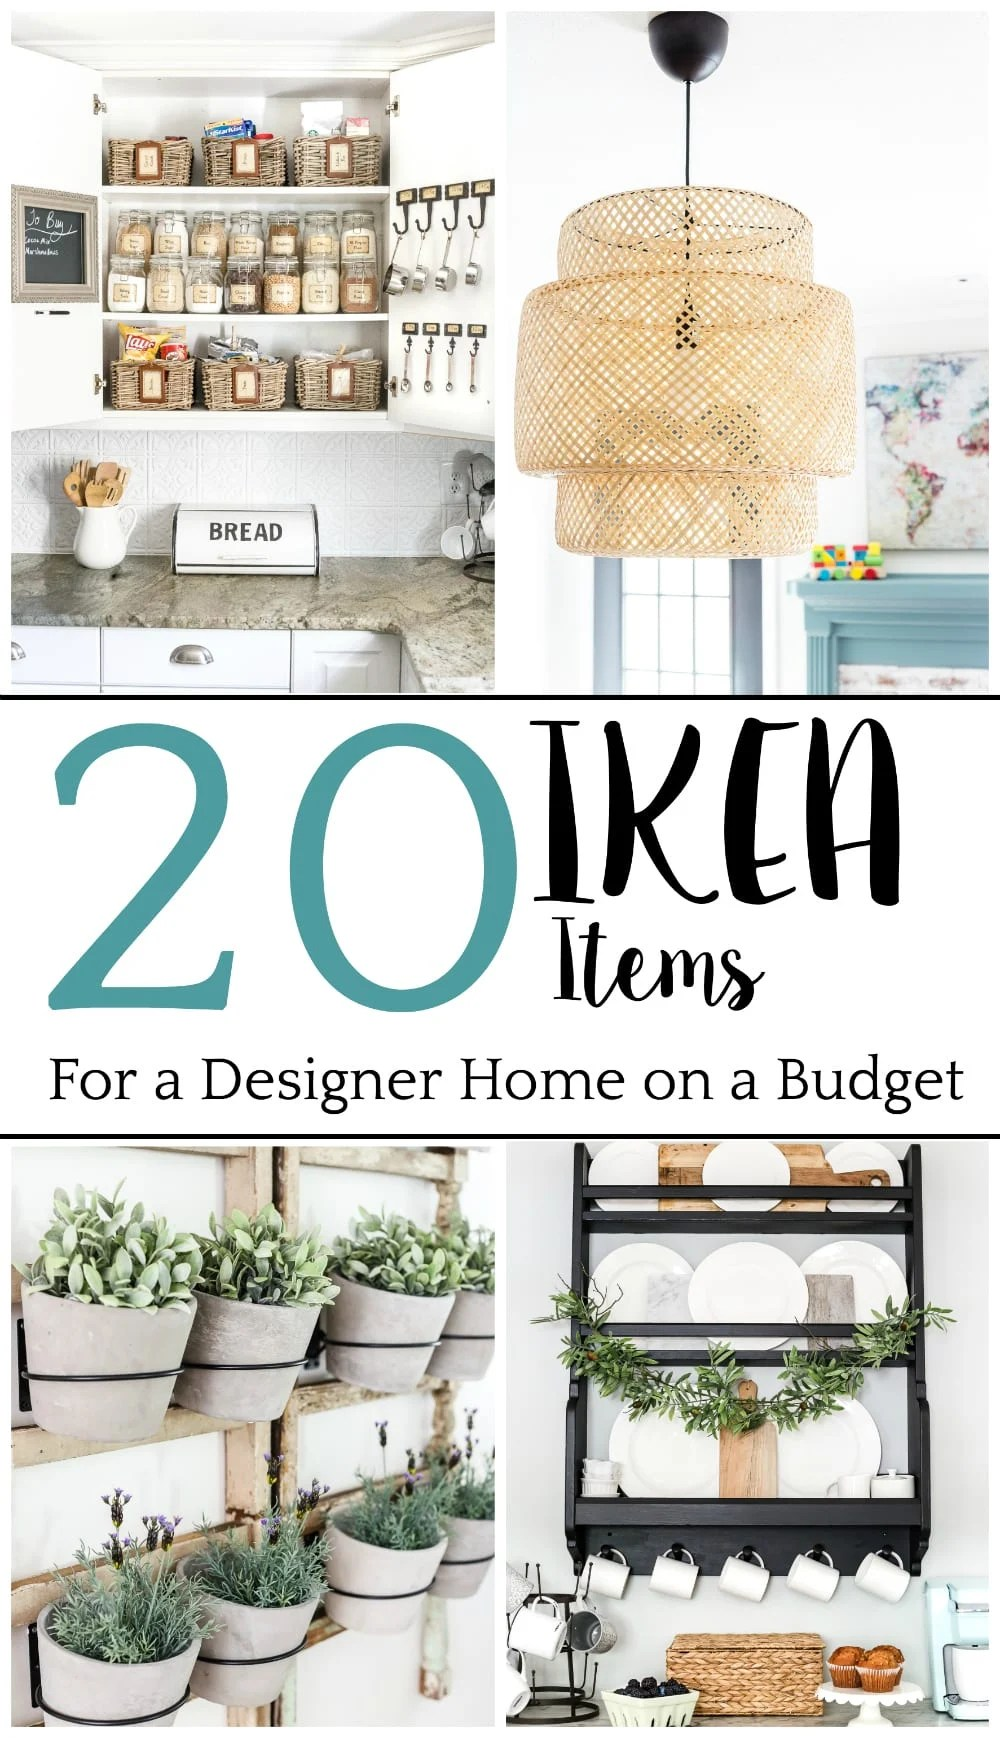 Top 10 Home and DIY Blog Posts of 2018 | 20 IKEA Items for a Designer Home on a Budget